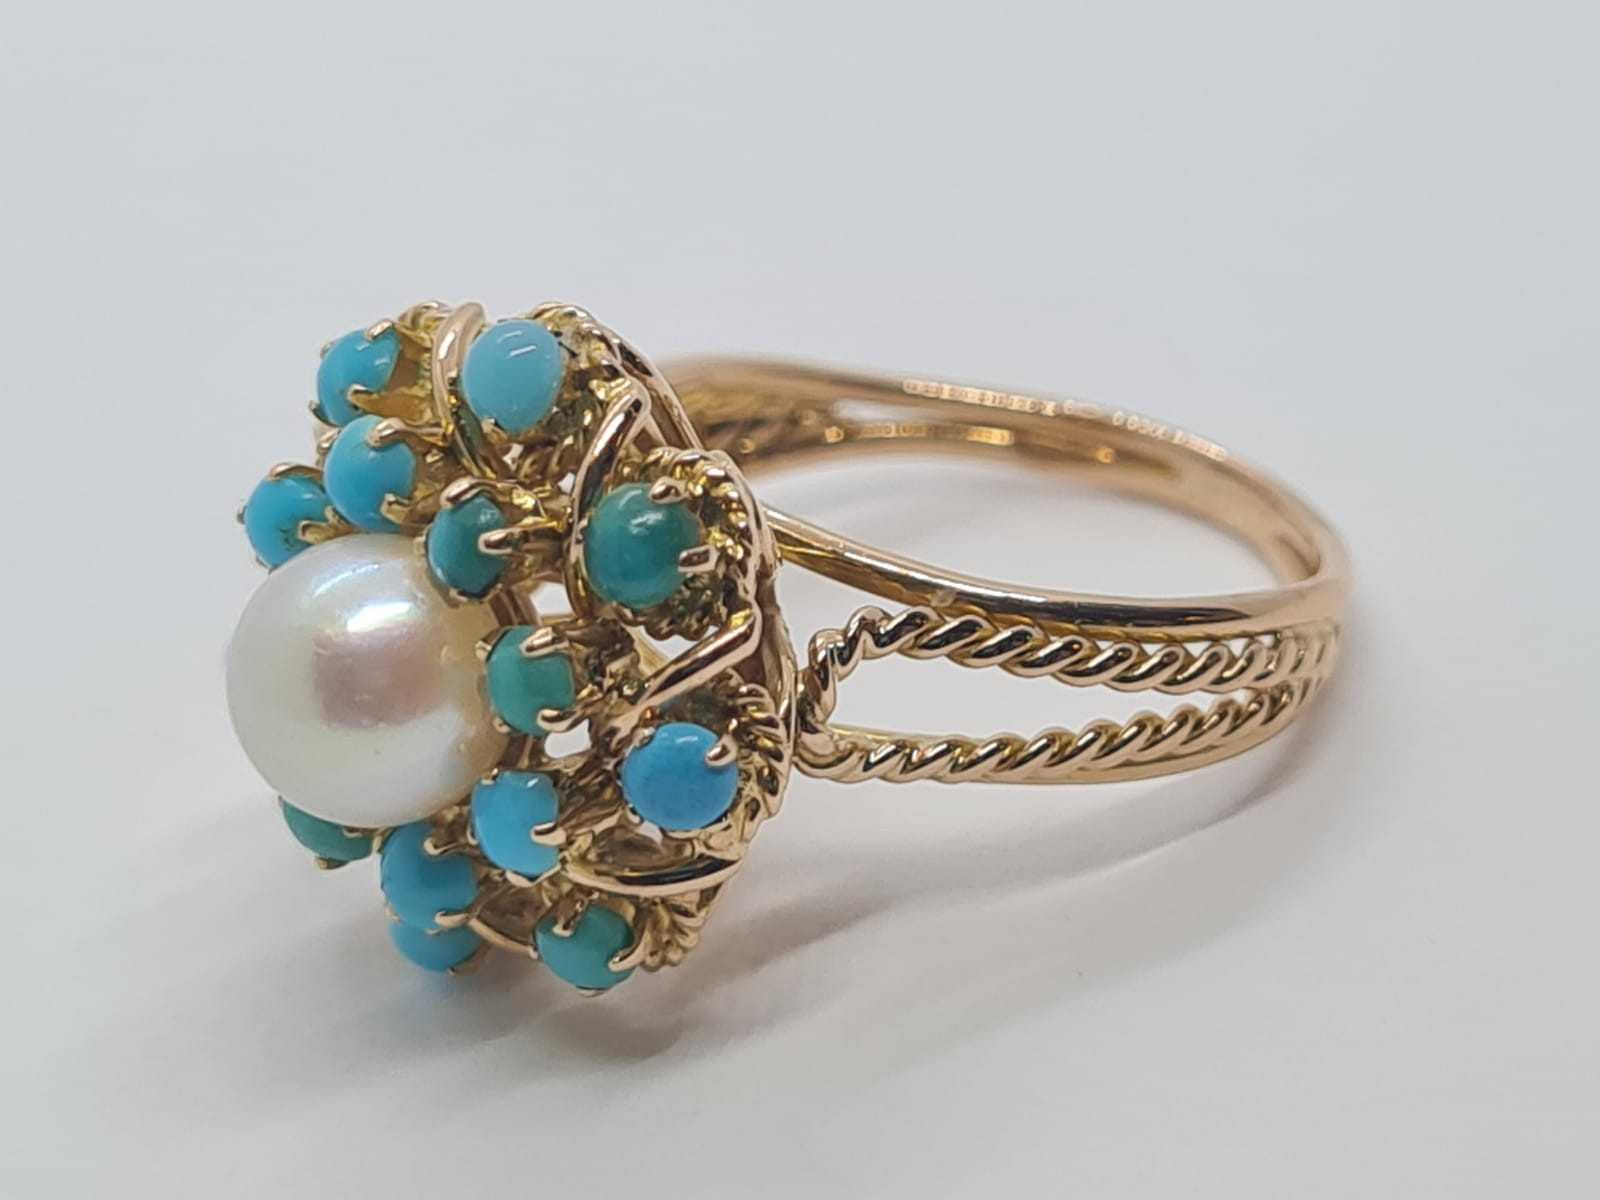 18k yellow gold TURQUISE AND PEARL CLUSTER RING, weight 5.3g and size J1/2 - Image 8 of 8